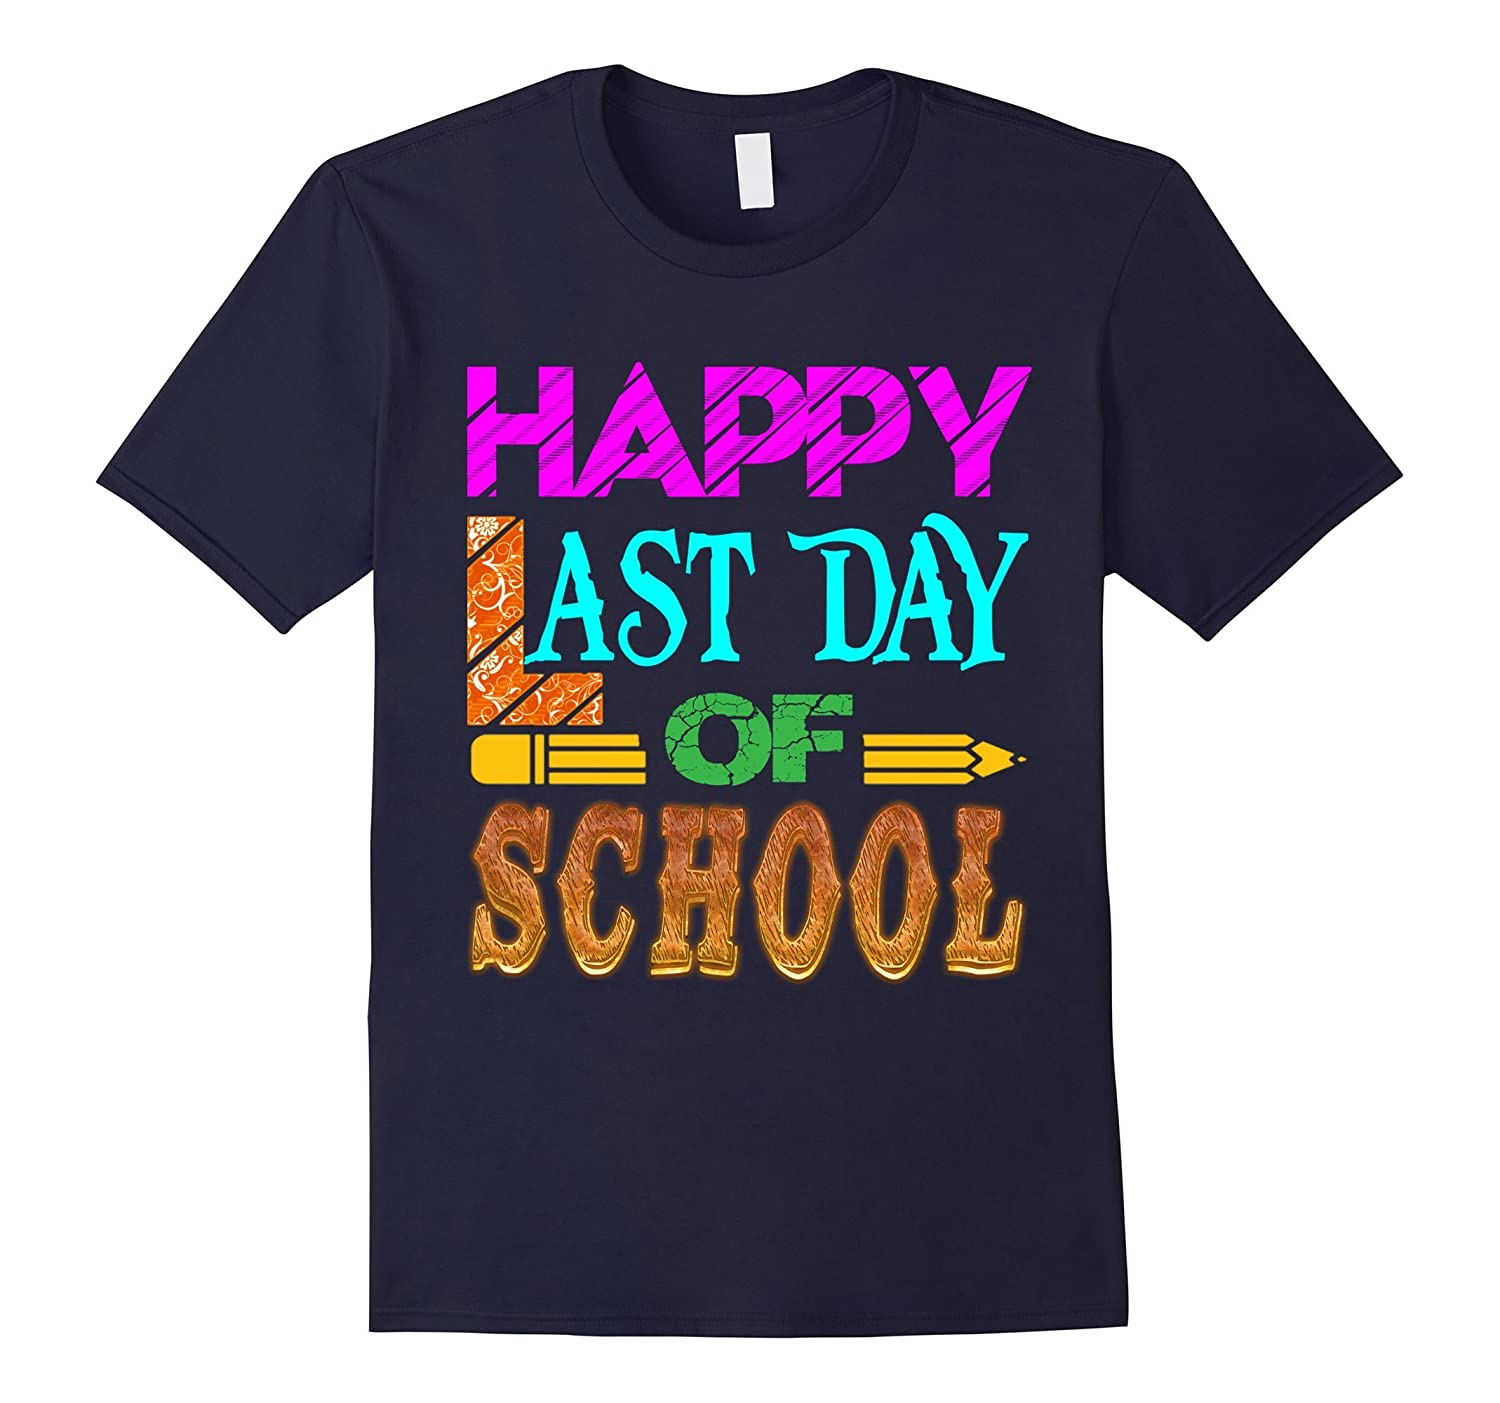 Happy Last Day of School T shirt for Everybody love School-Vaci